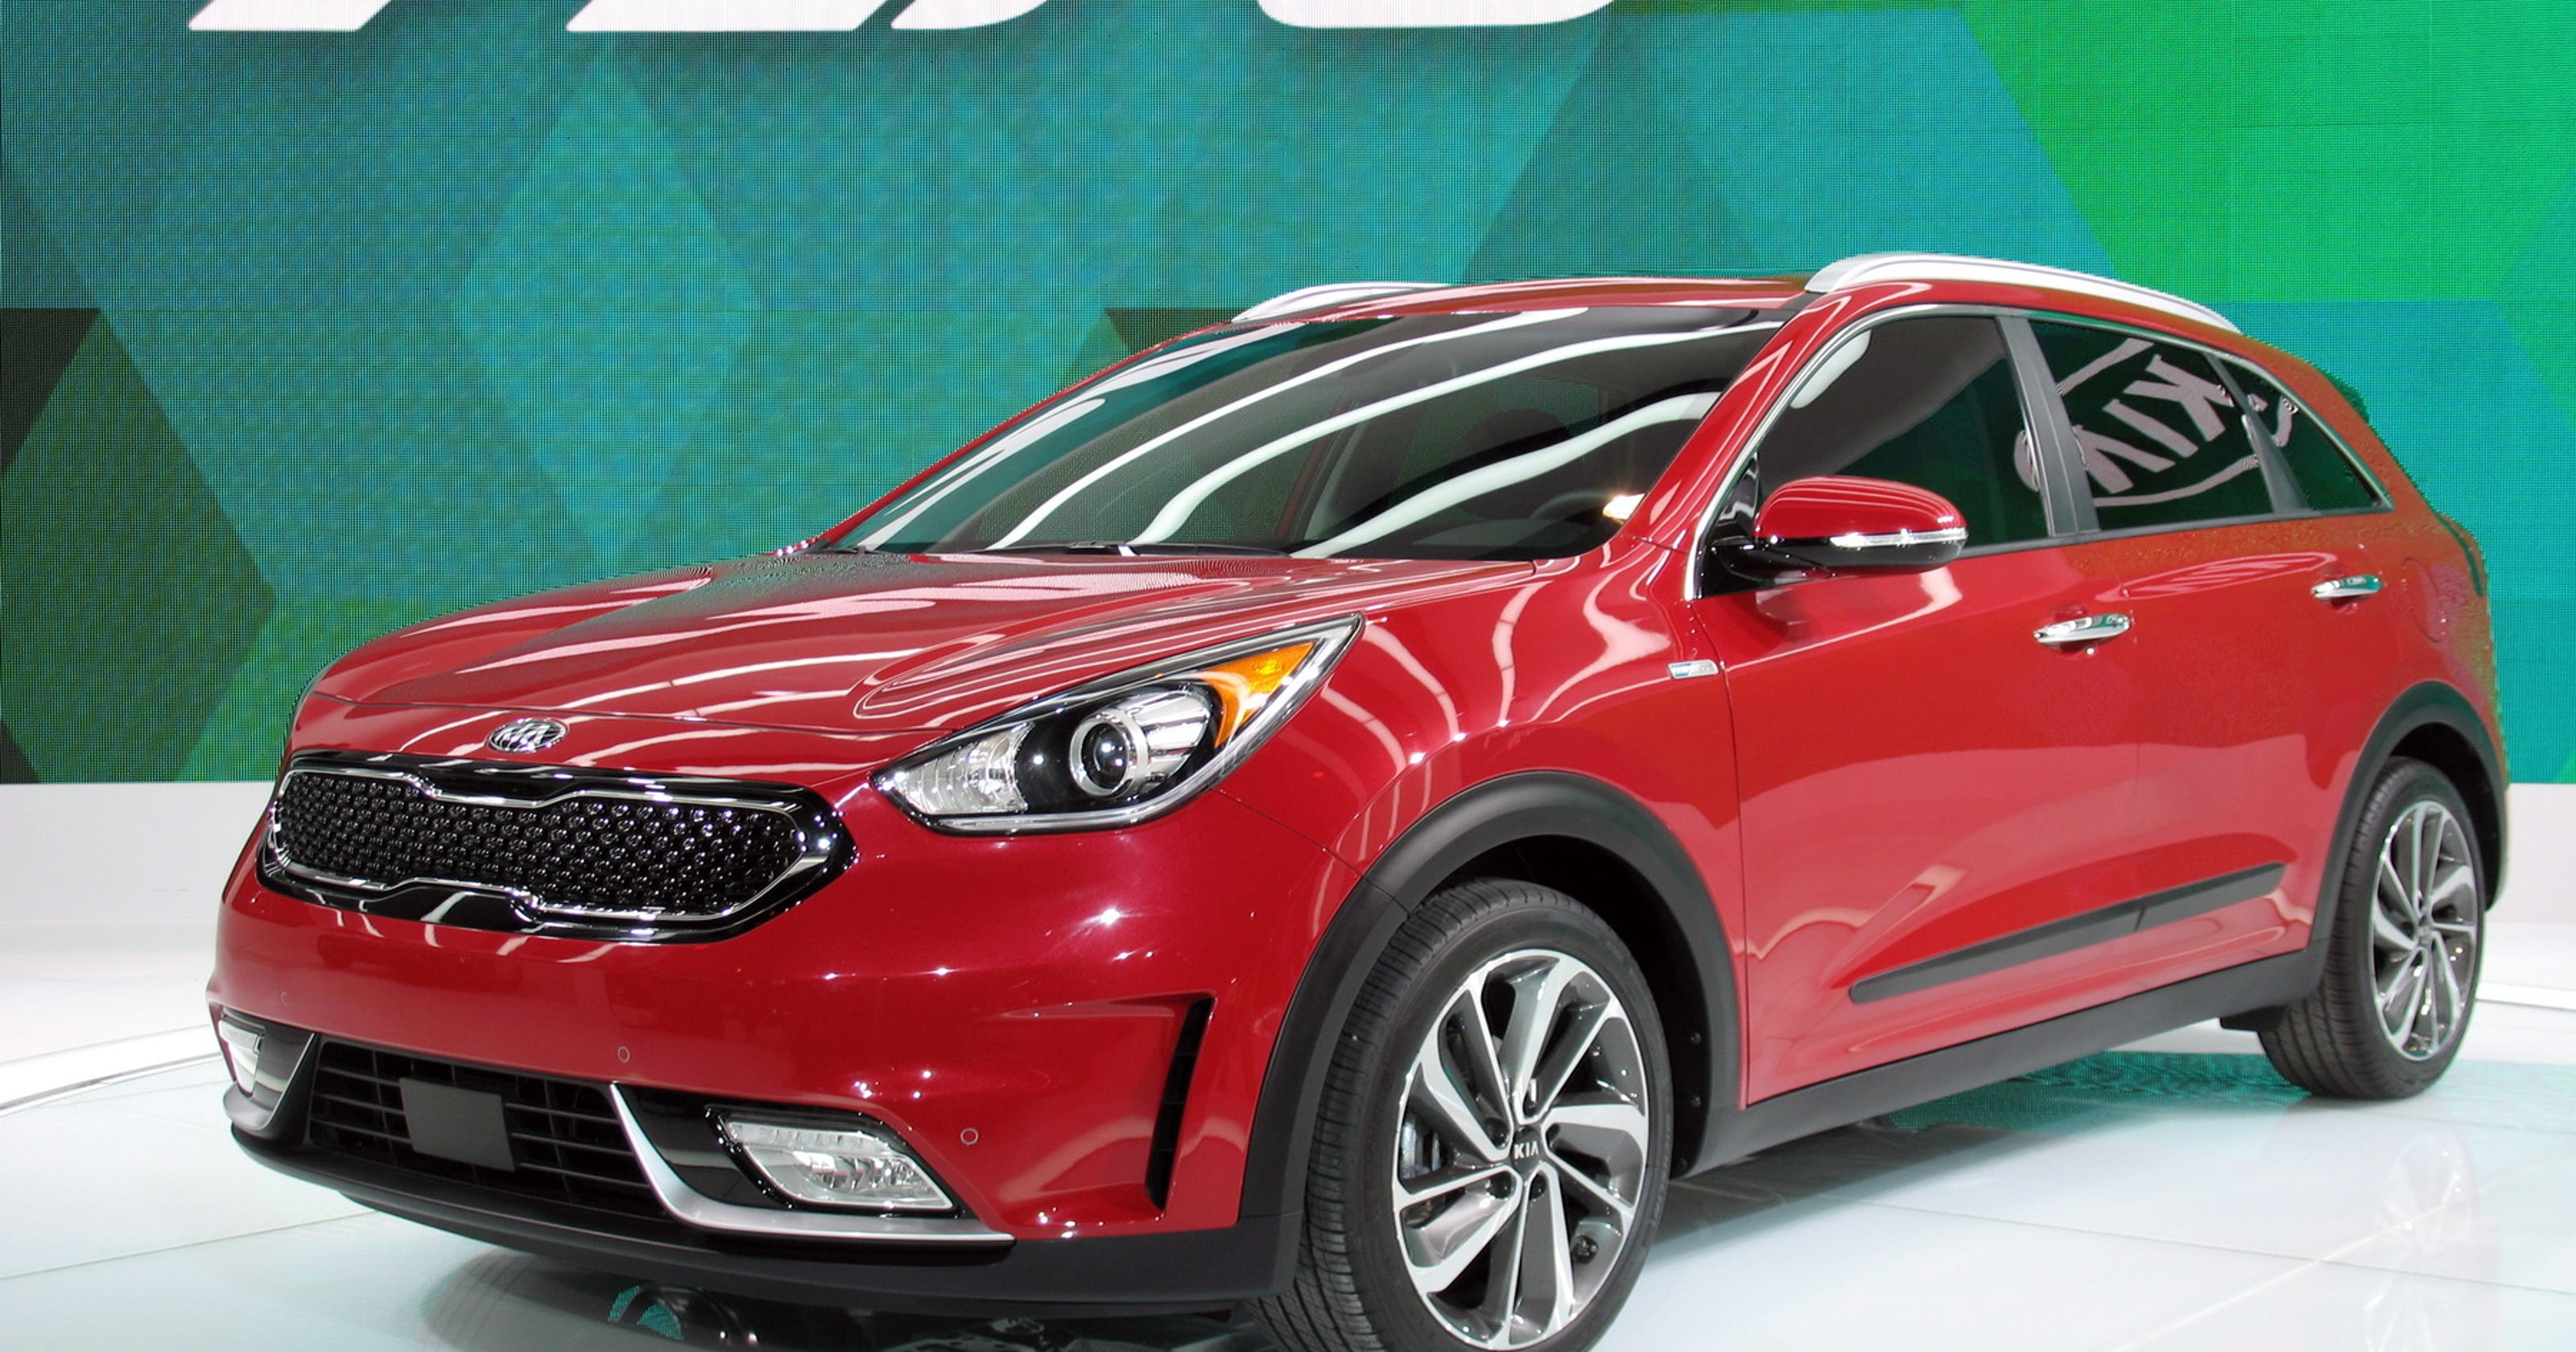 2017 Kia Niro Hybrid Utility Vehicle Is Clean And Versatile